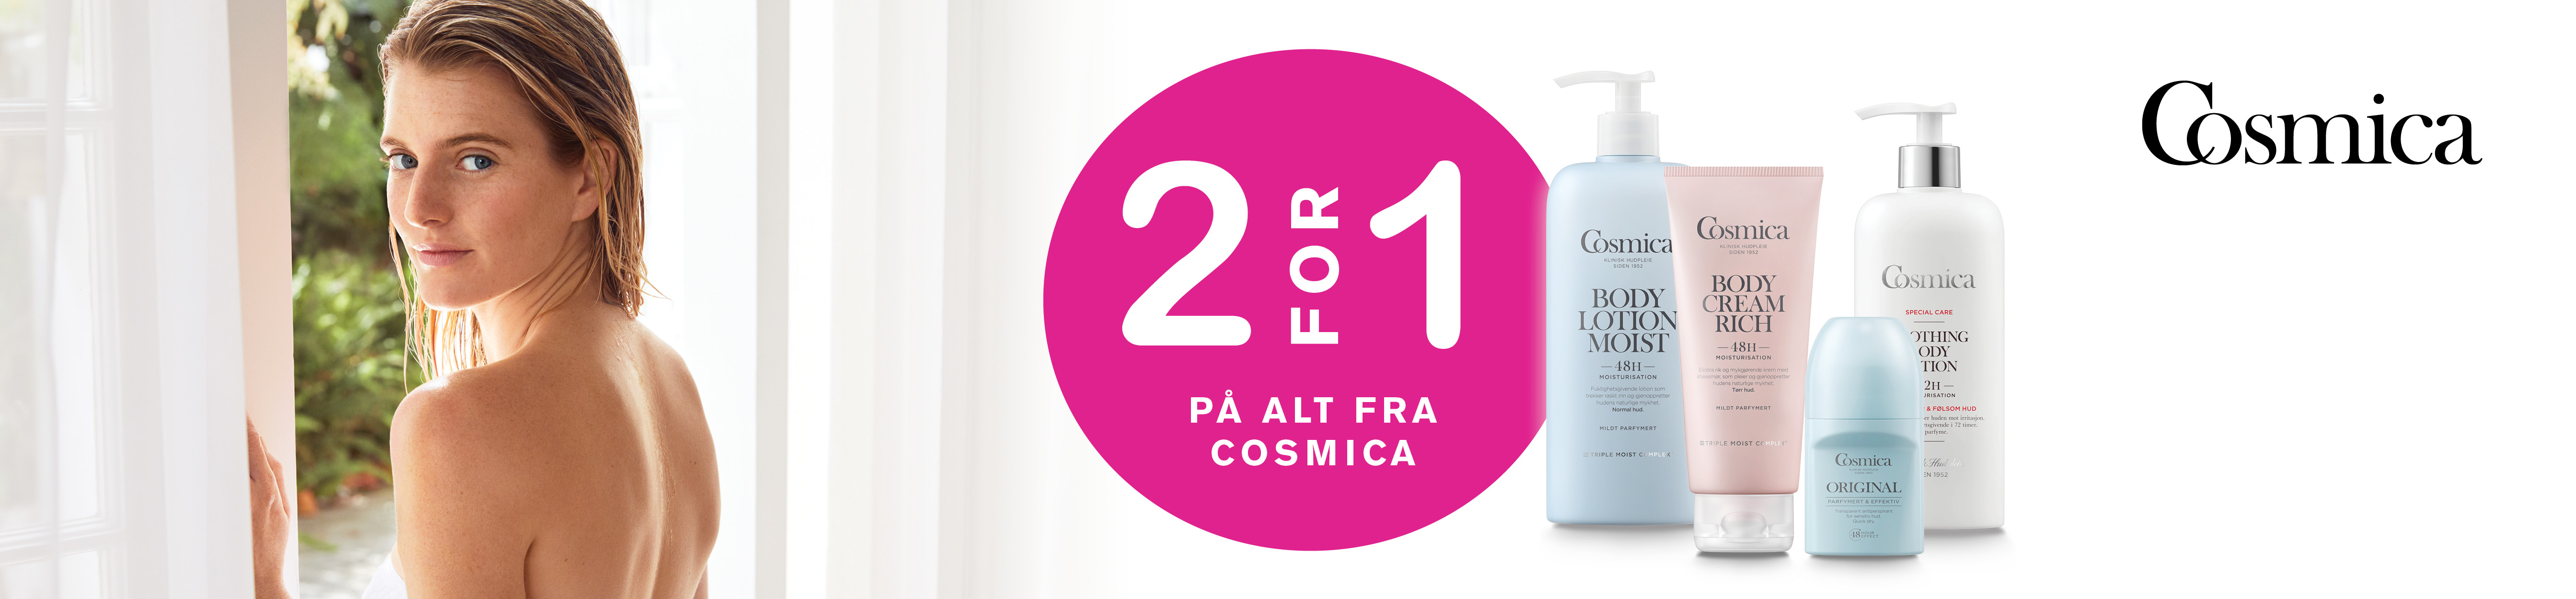 Cosmica Body lotiondeo banner NMD 1290x300 ny.jpg